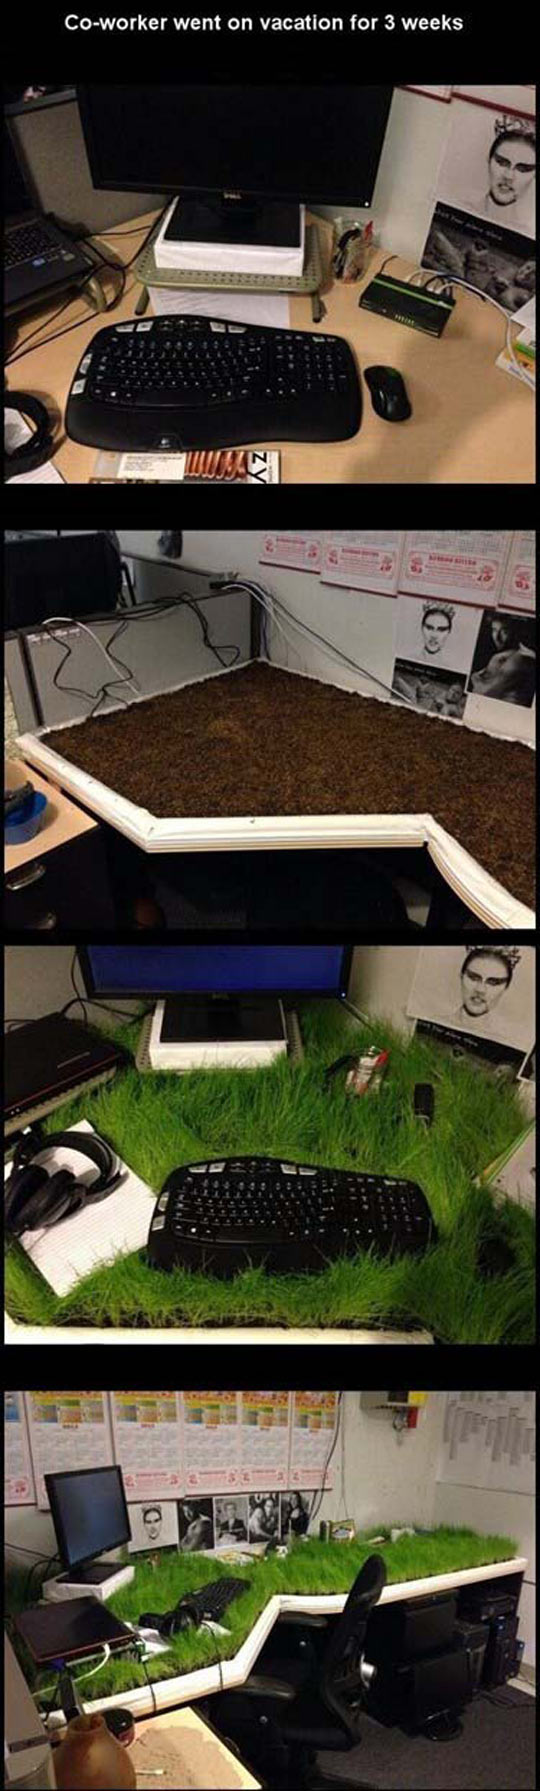 Hope He Likes His New Environmental Desk